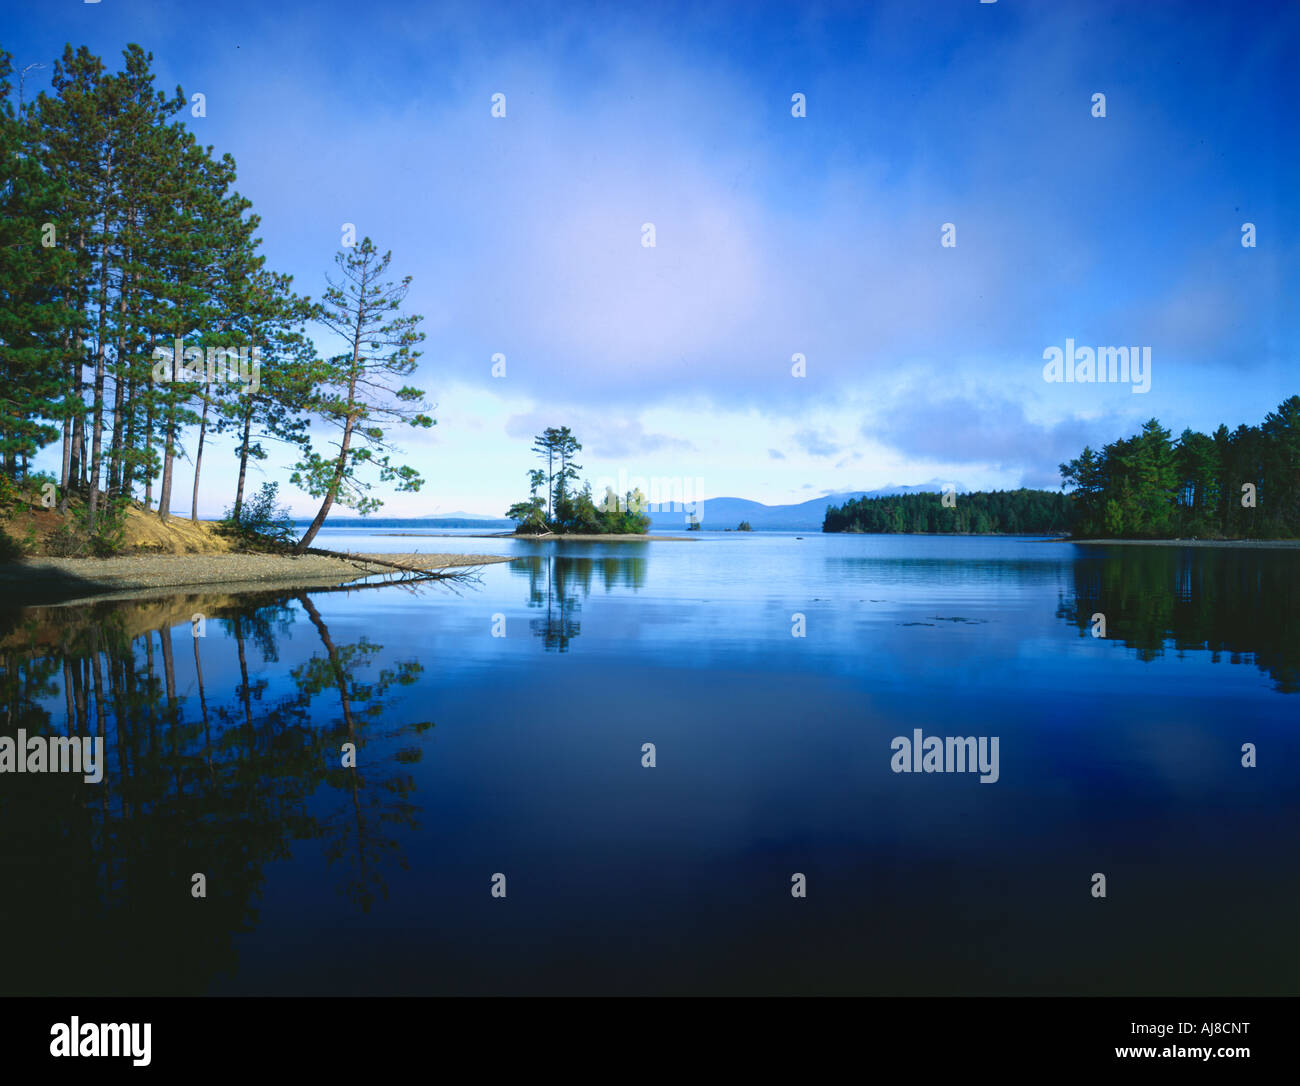 Moosehead Lake Lily Bay State Park Maine USA Stock Photo: 14655683 on